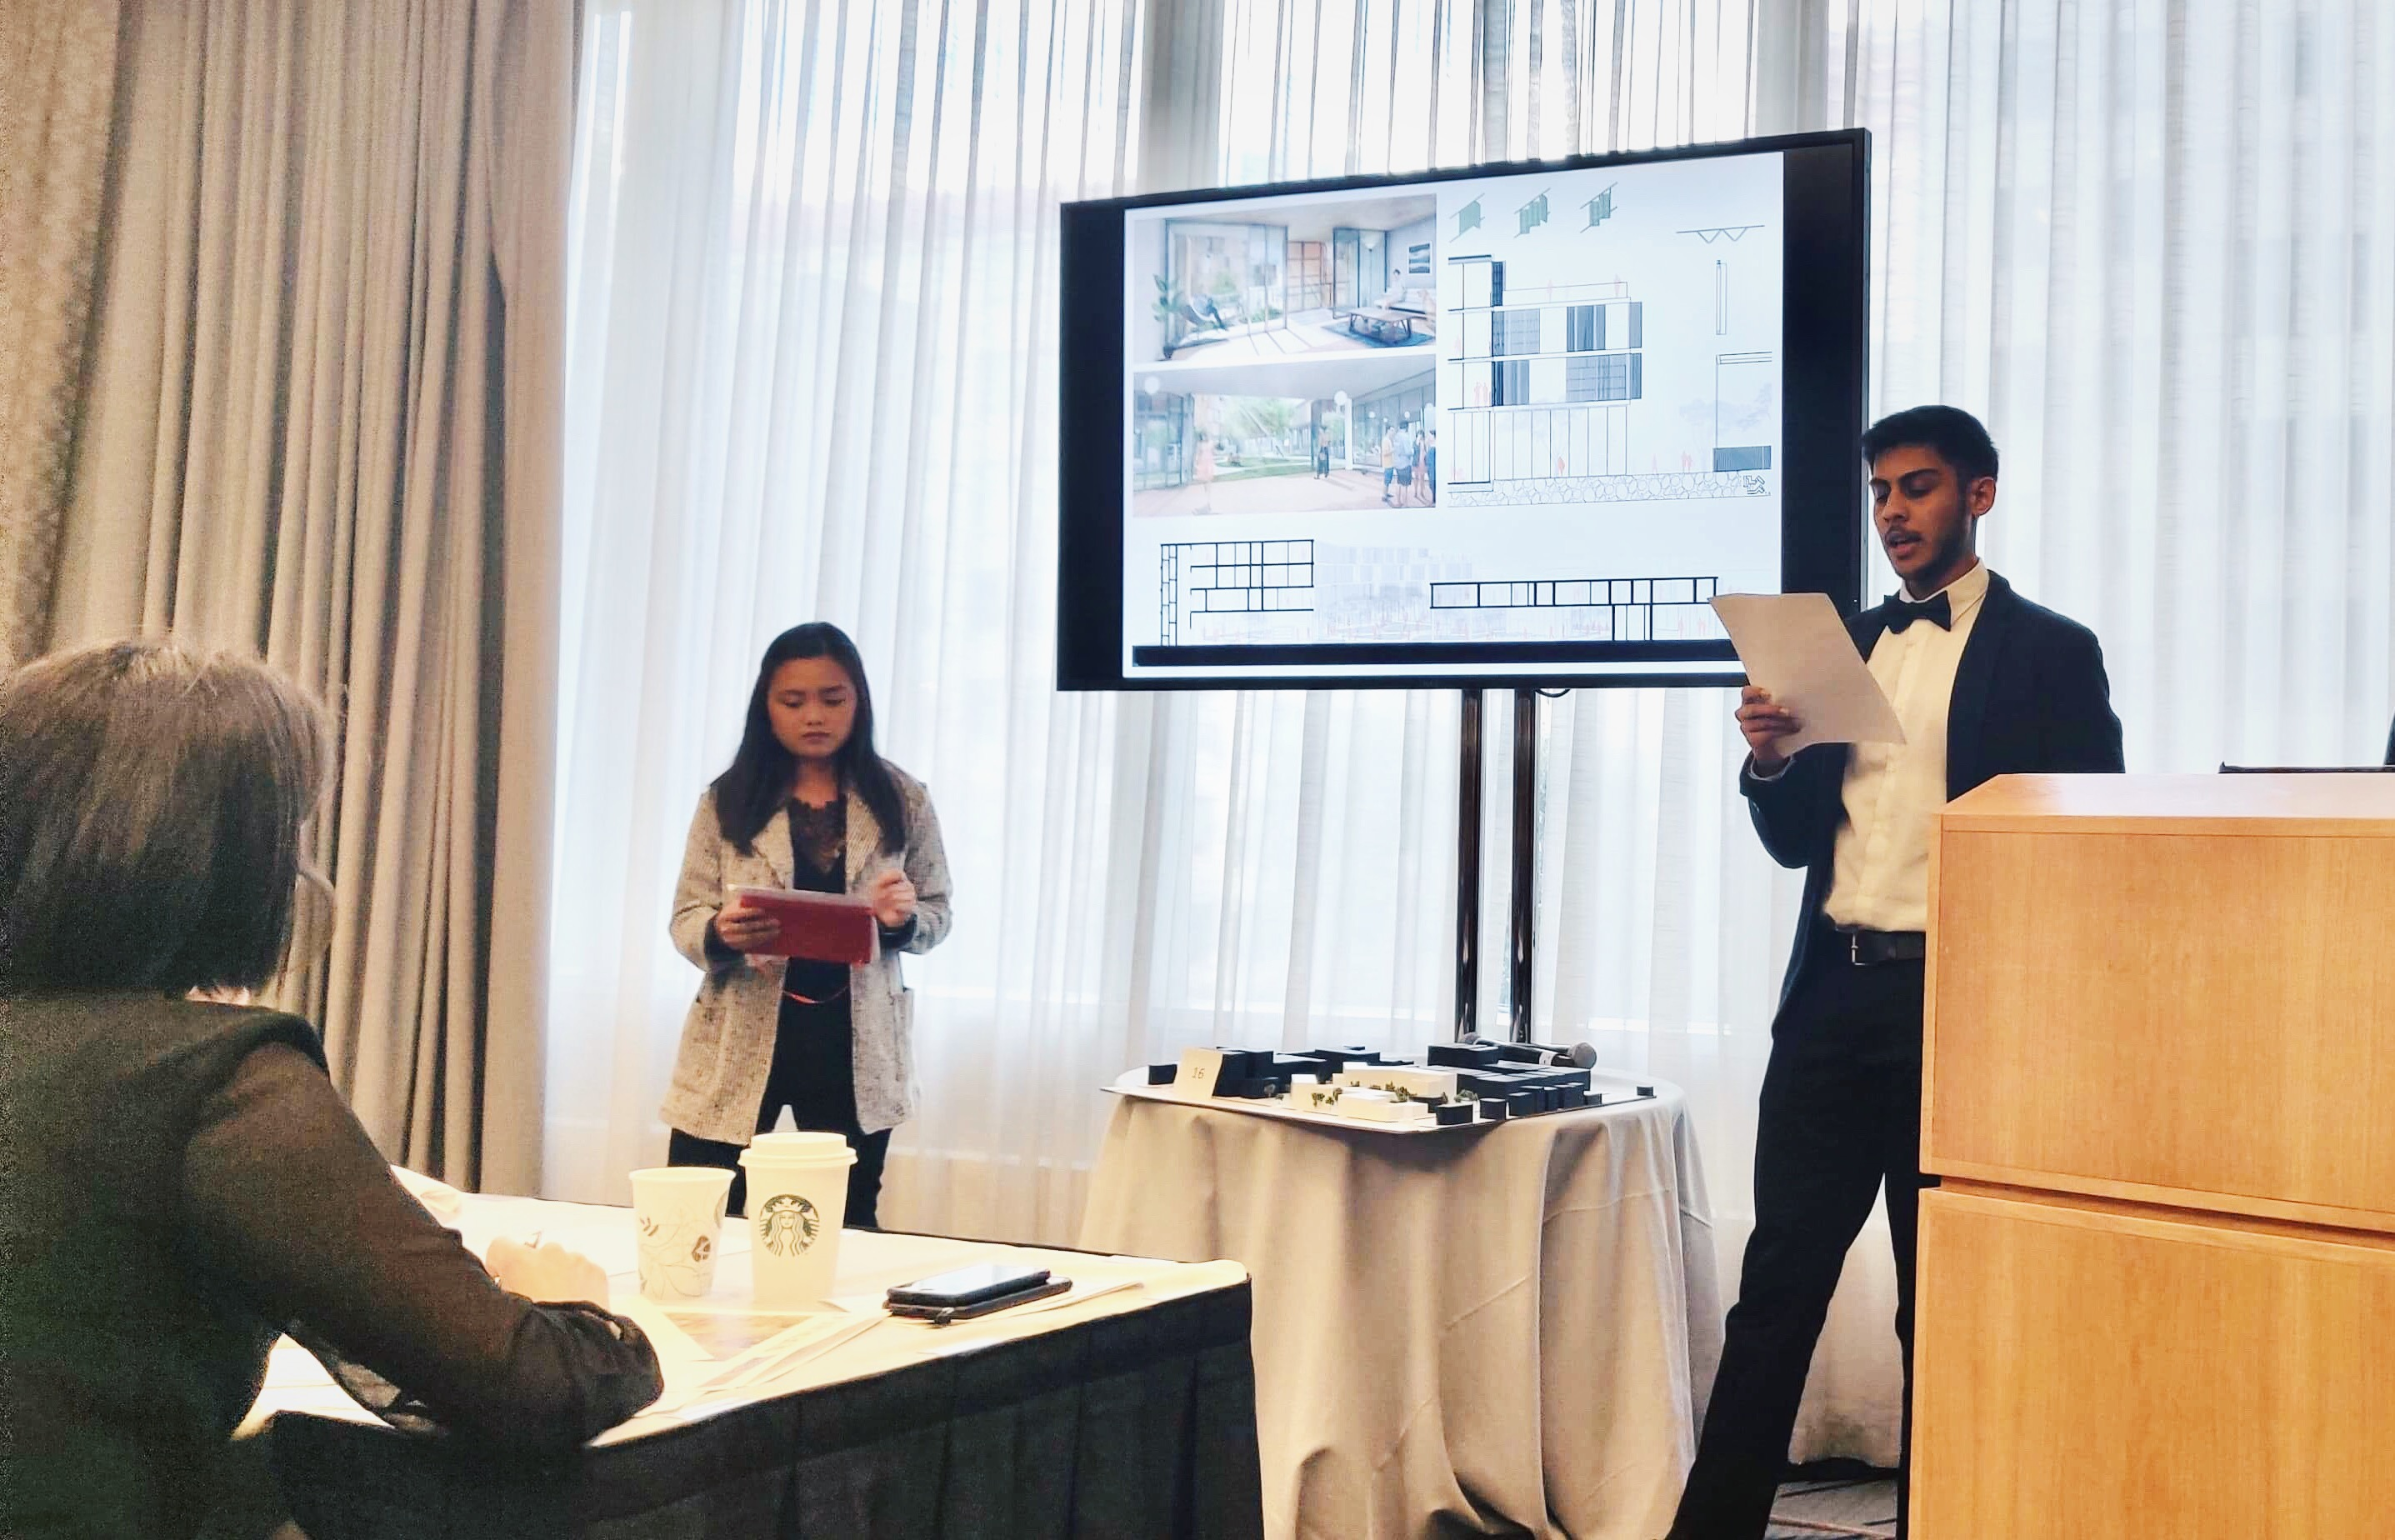 Iowa State architecture students Alyanna Subayno and Obbishek Mandal present their team's project in the Barbara G. Laurie Student Design Competition at the NOMA'19 Conference in New York City